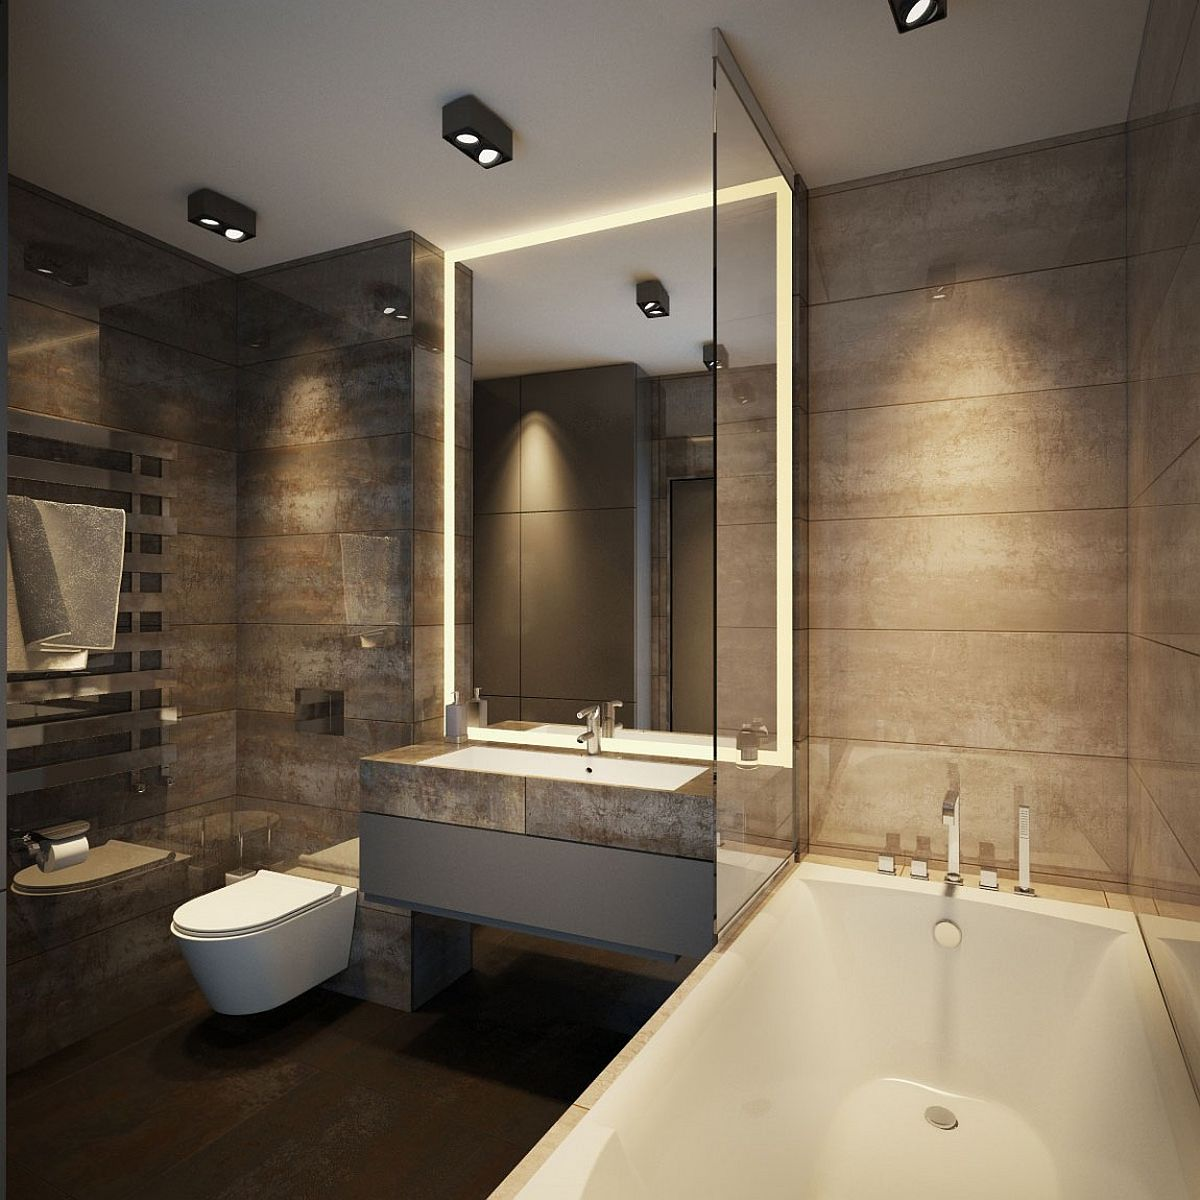 Apartment Bathrooms Ideas Bathroom Designs: Apartment Ernst In Kiev: Inspired By Posh Hotel Ambiance